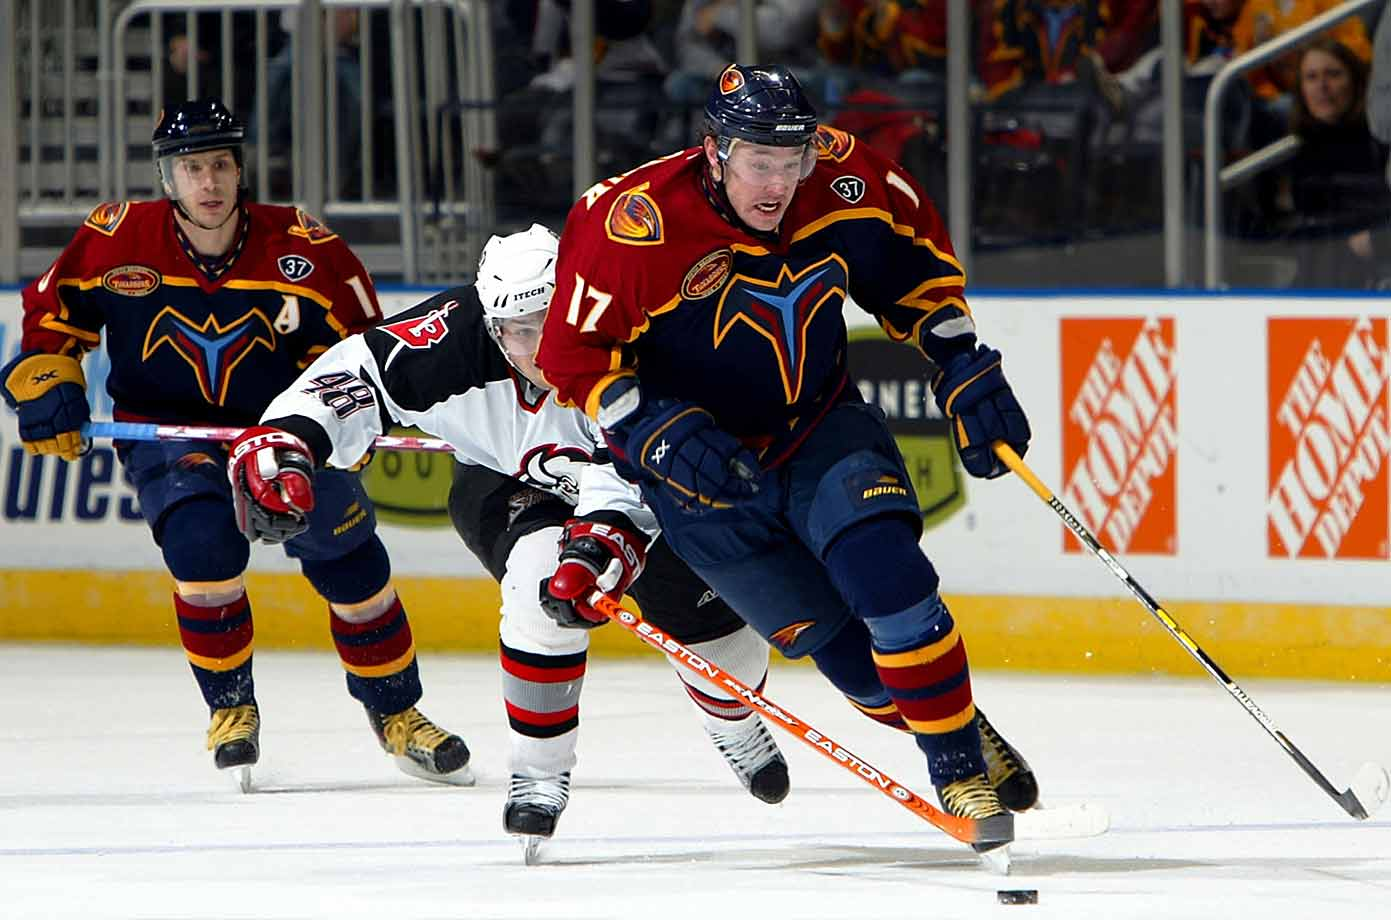 The Russian sniper averaged 36 goals during his three seasons with the Thrashers before the lockout and remained one of the game's most lethal scorers after the NHL returned. He scored 52 goals in both the 2005-06 and 2007-08 seasons, and though his Russian teams often disappointed at the Olympics, they won the World Ice Hockey Championship in 2008 and 2009. In 2011-12, Kovalchuk set a record for NHL shootout goals in a season with 11.